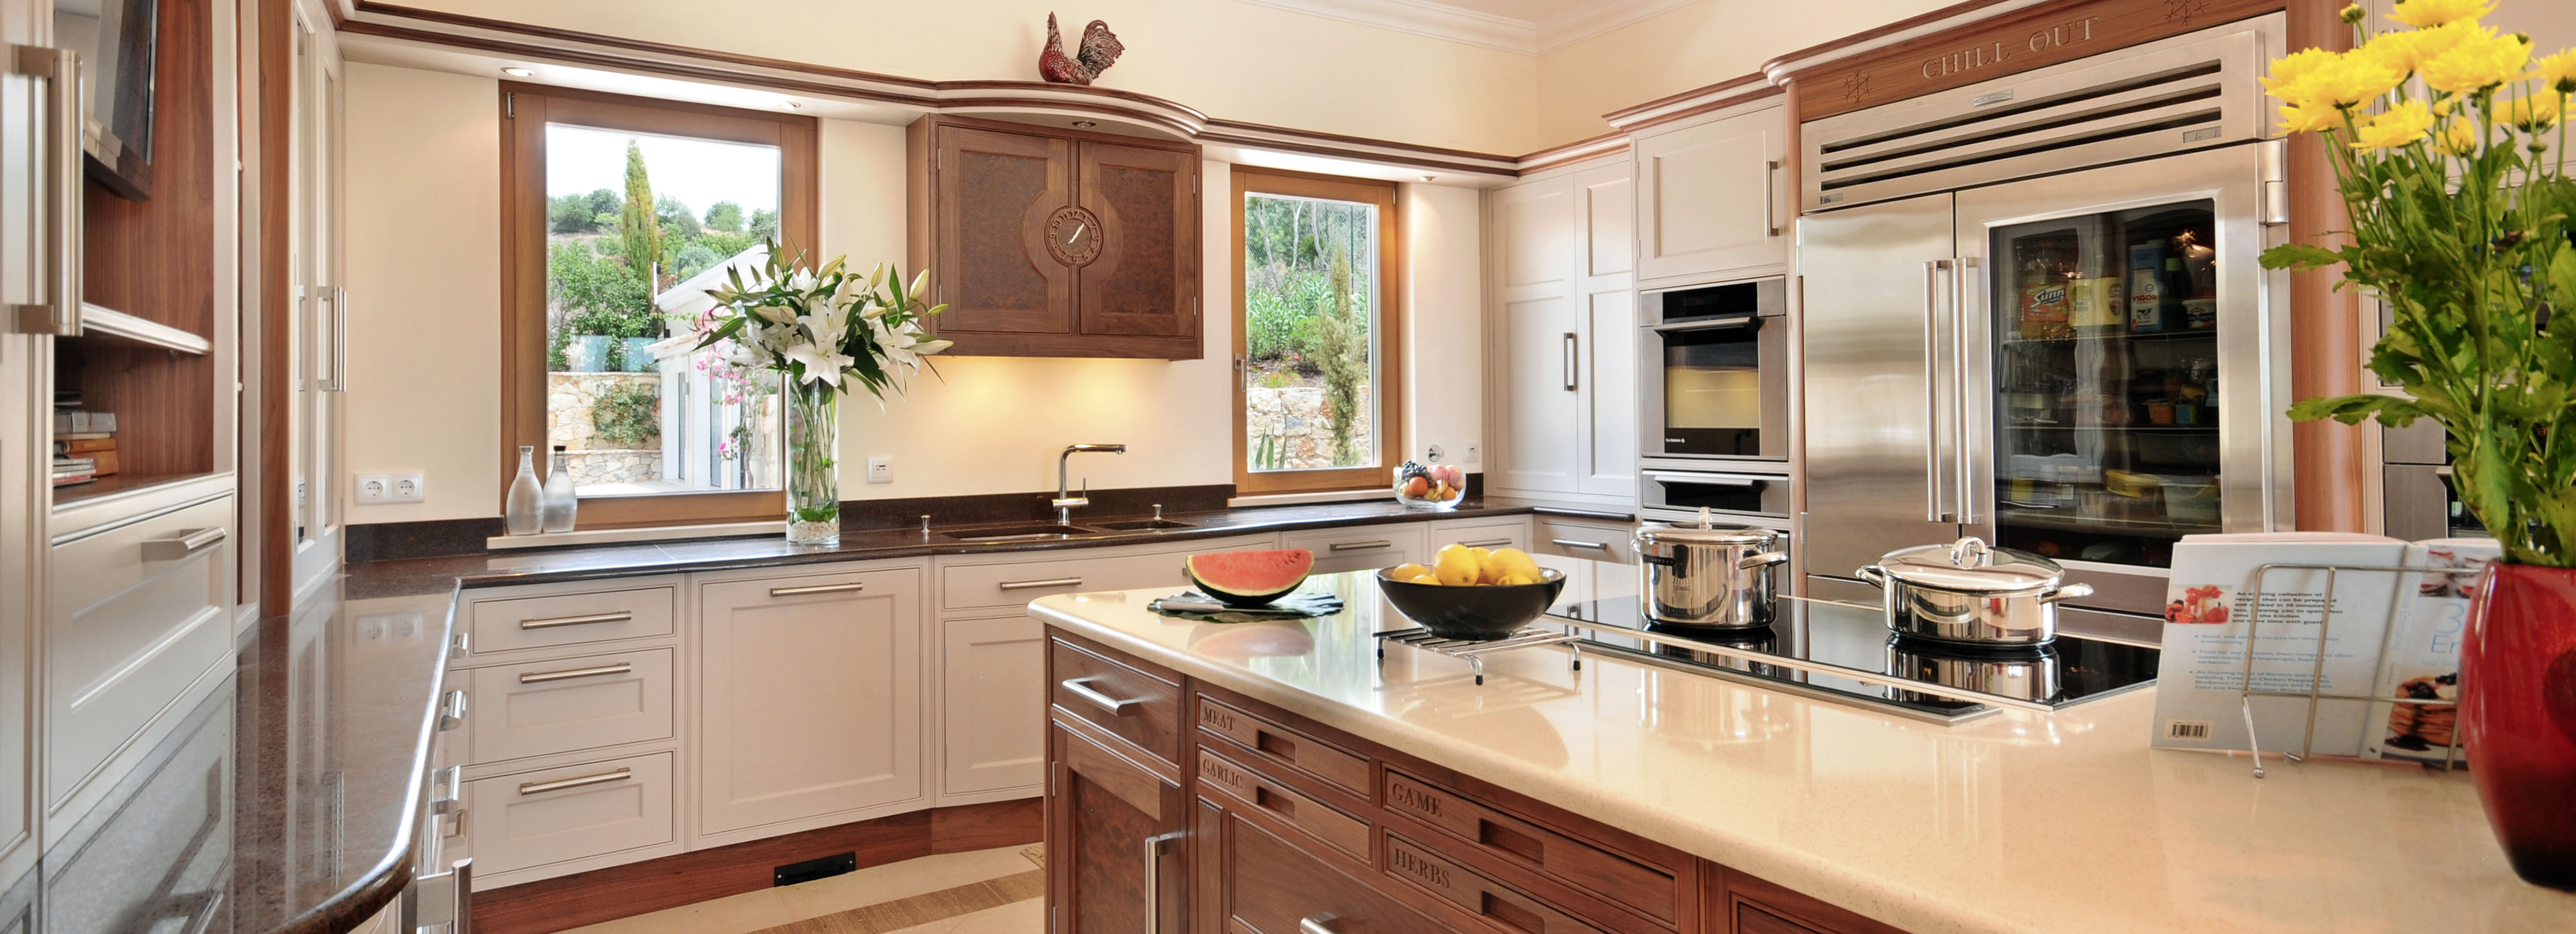 classic kitchen ideas classic kitchen design and installation surrey raycross 11010